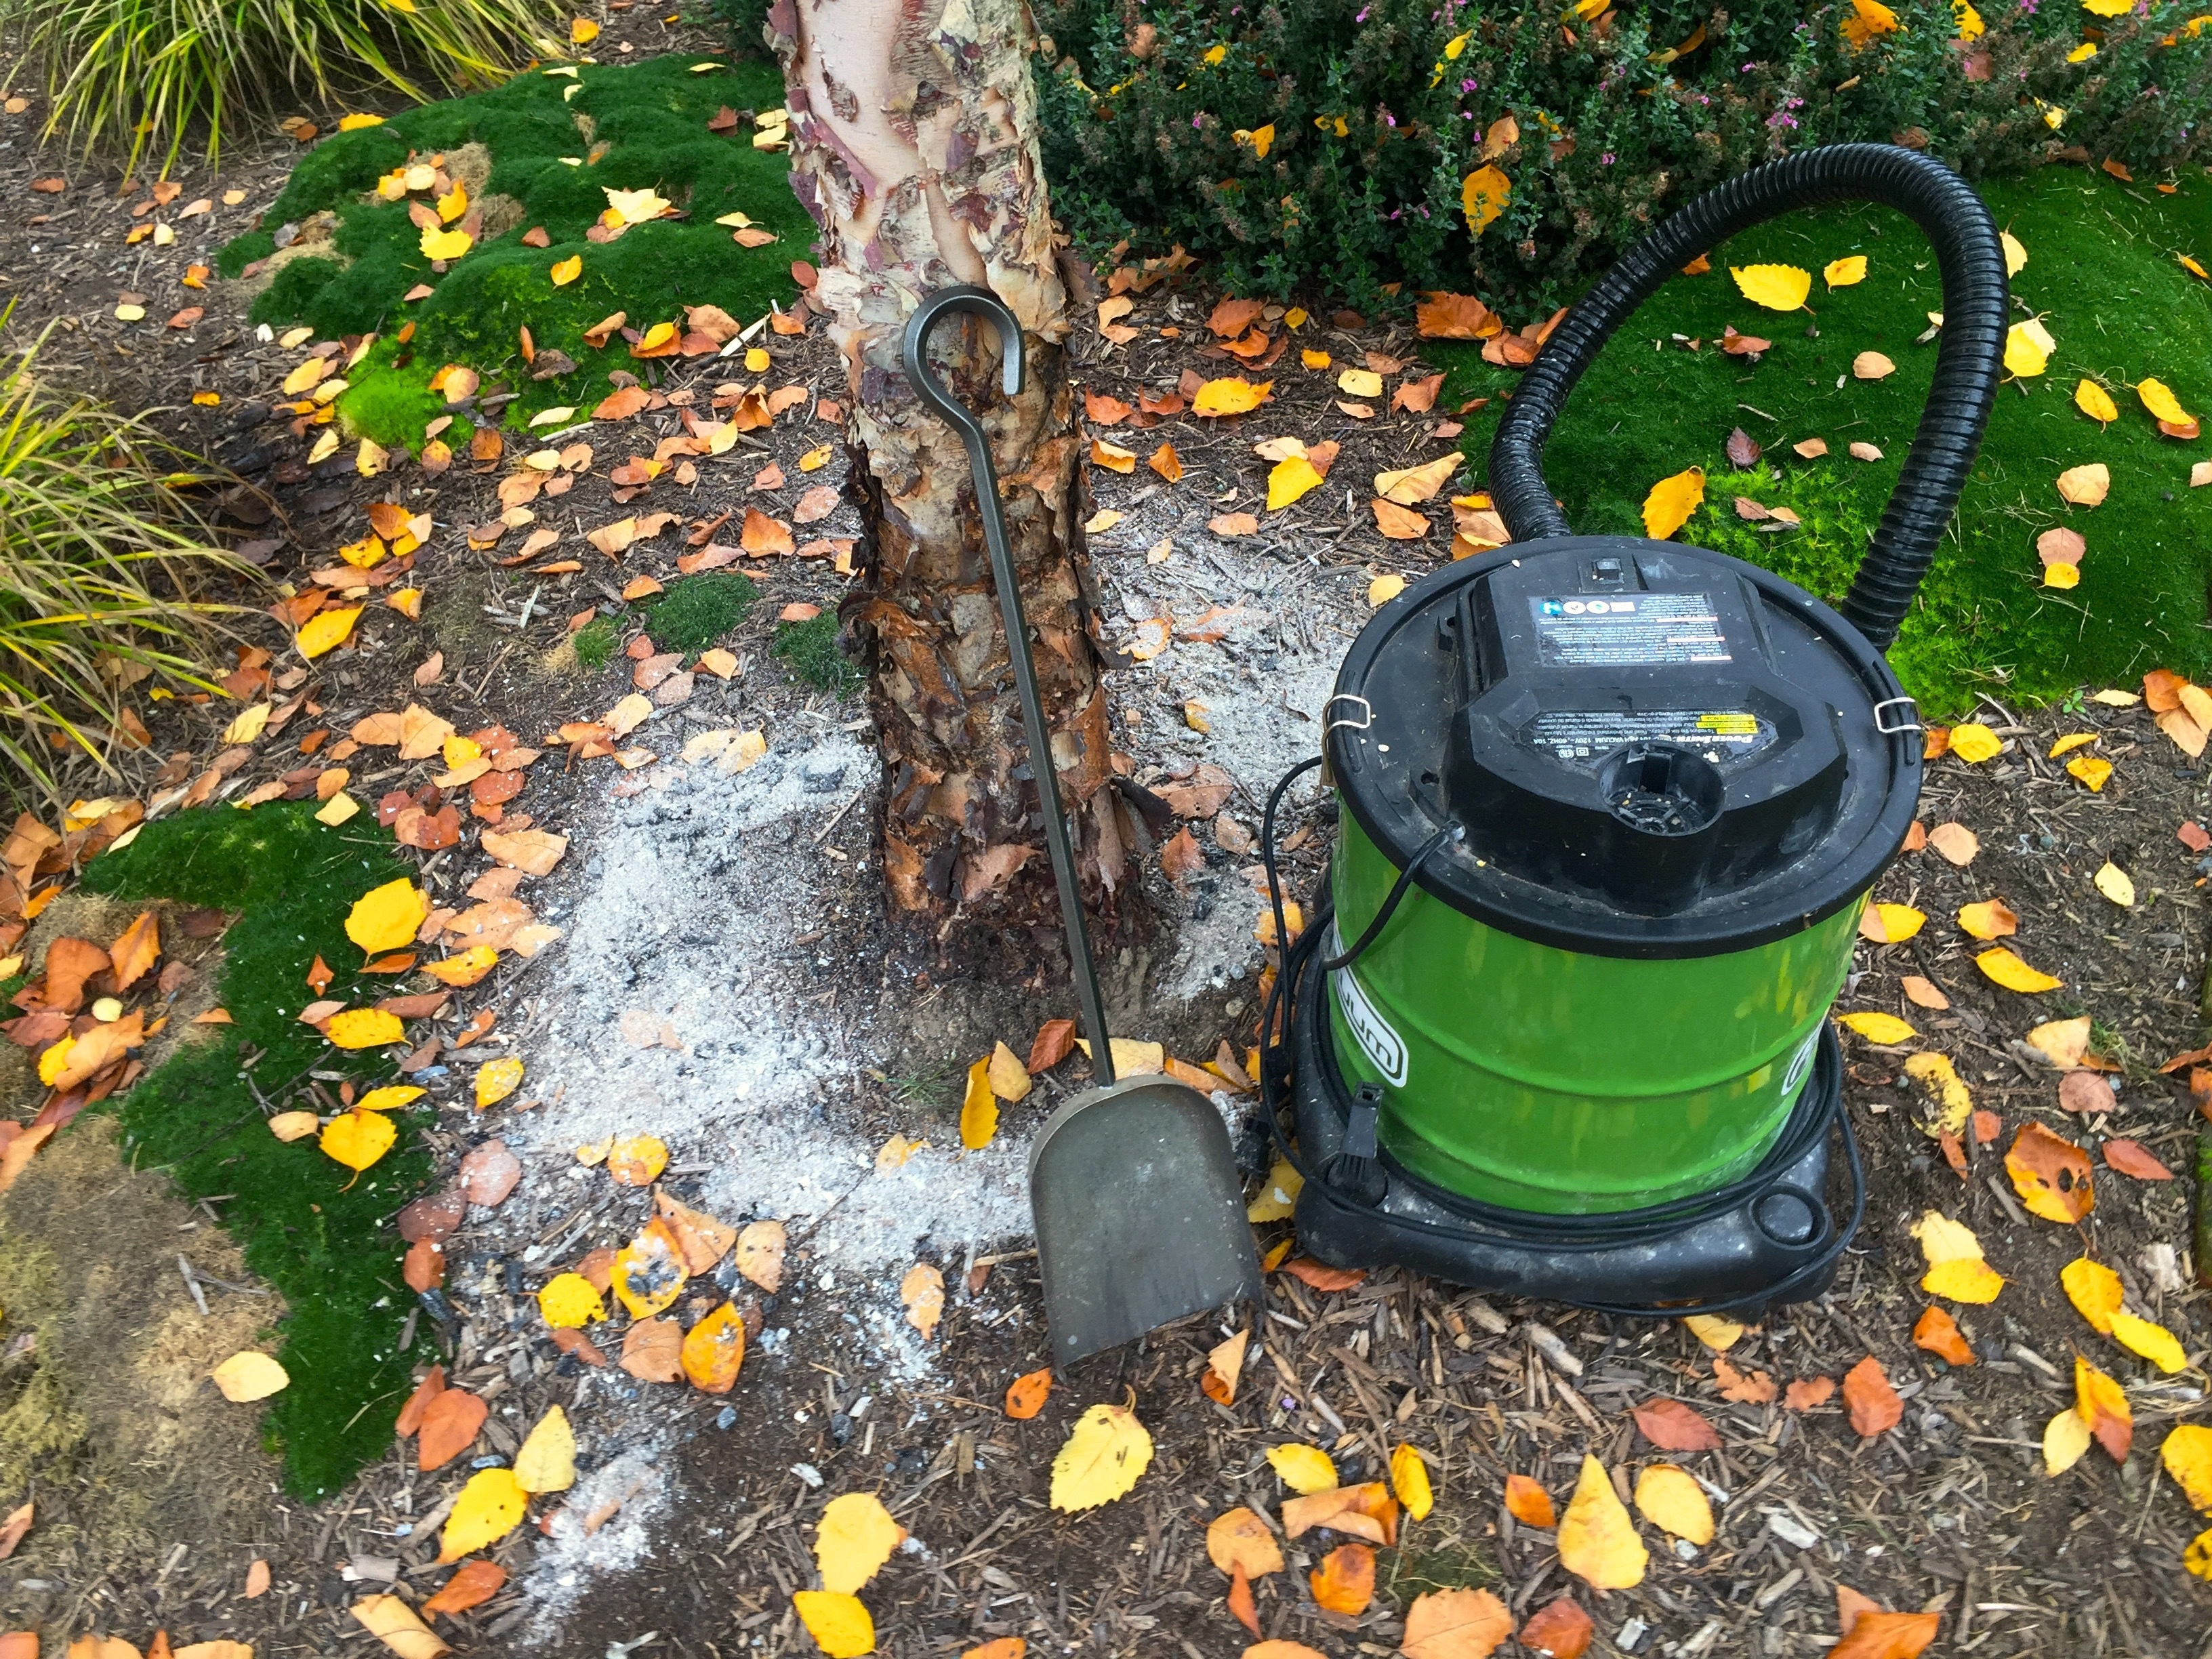 Wood ash from fireplaces can enrich garden soil. Here's how.